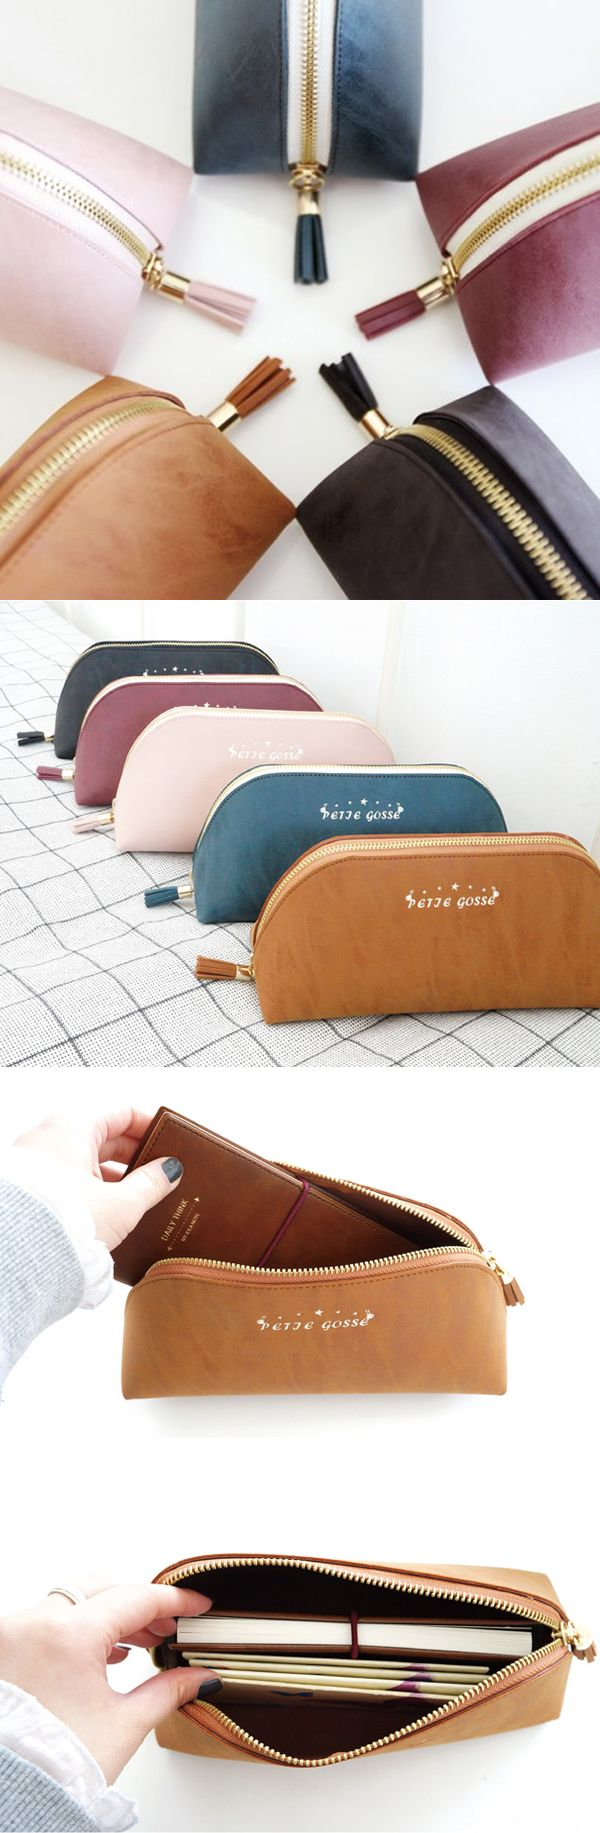 A wonderful pouch as it is spacious and useful! Can be used as everyday pouch for daily essentials, pen pouch and toiletry pouch when you go traveling! The cute tassel attached is a lovely bonus feature!